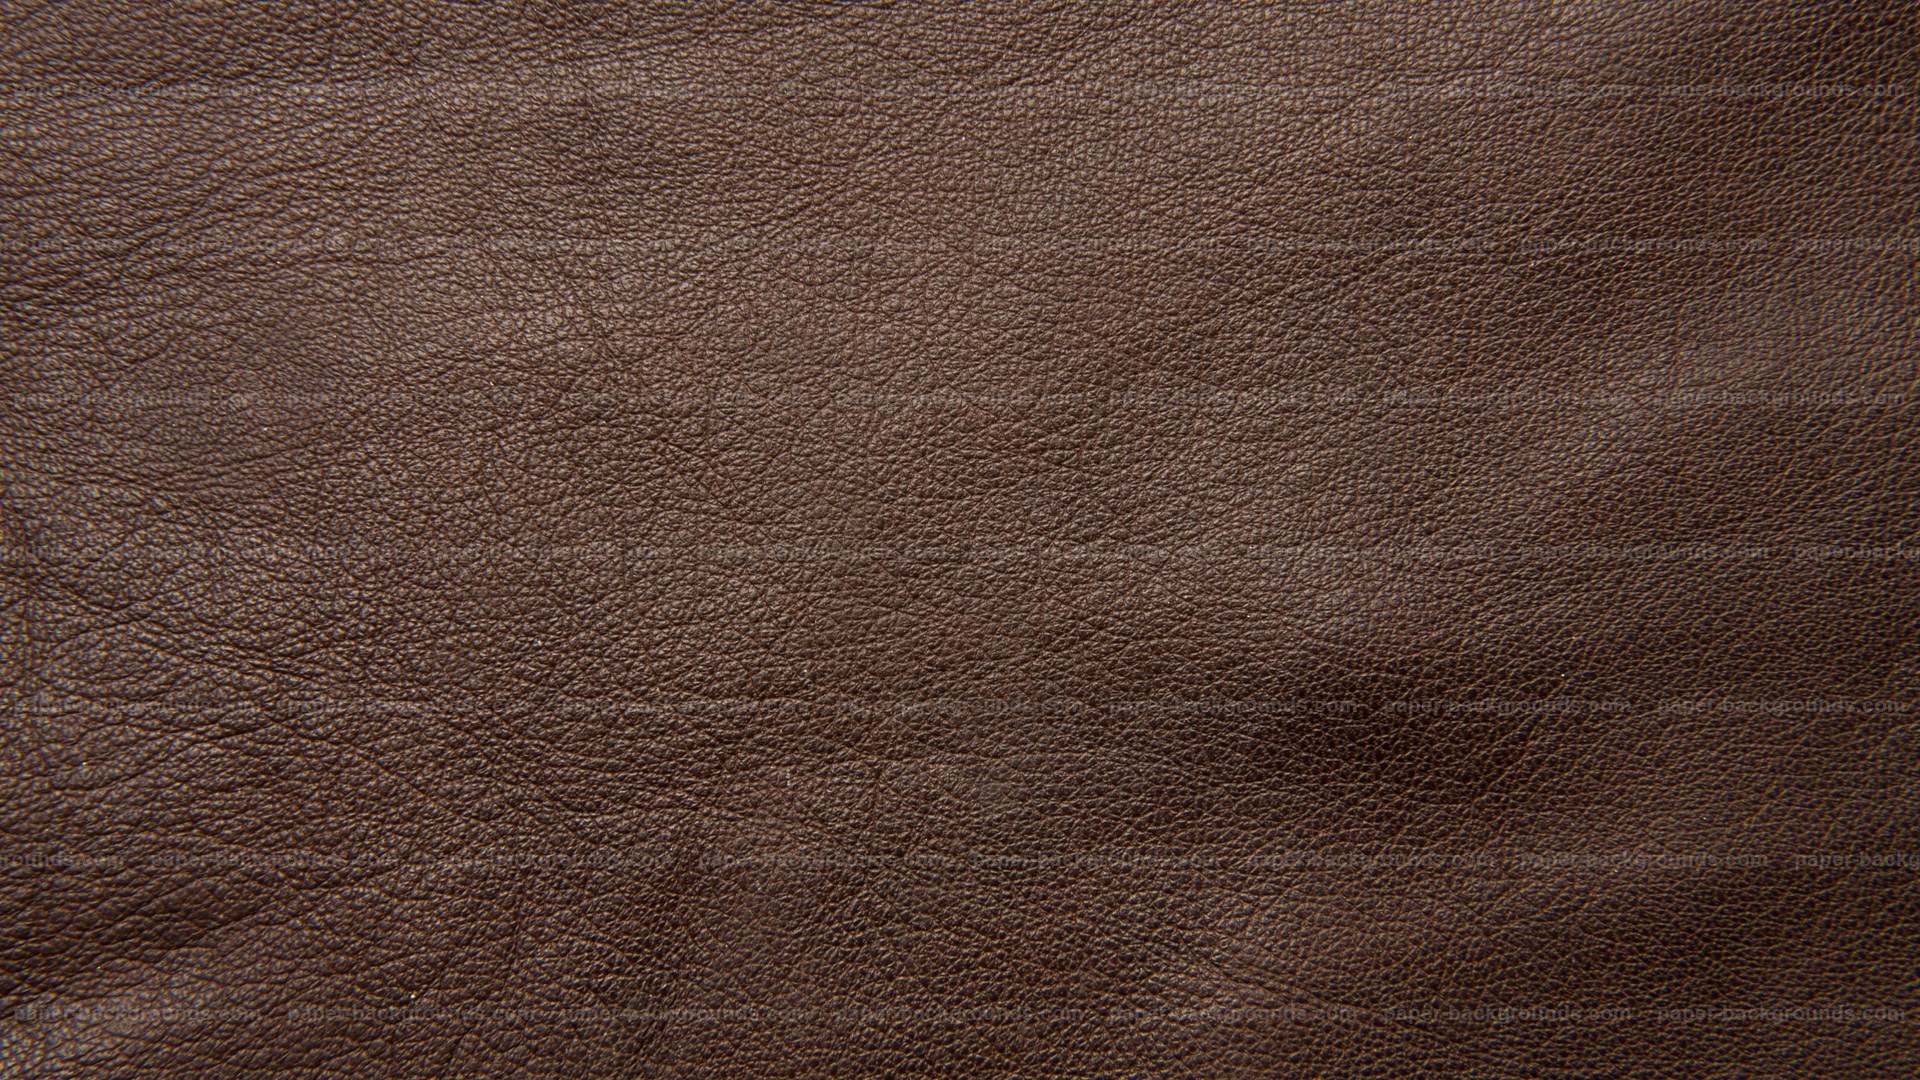 Shiny Dark Brown Leather Texture